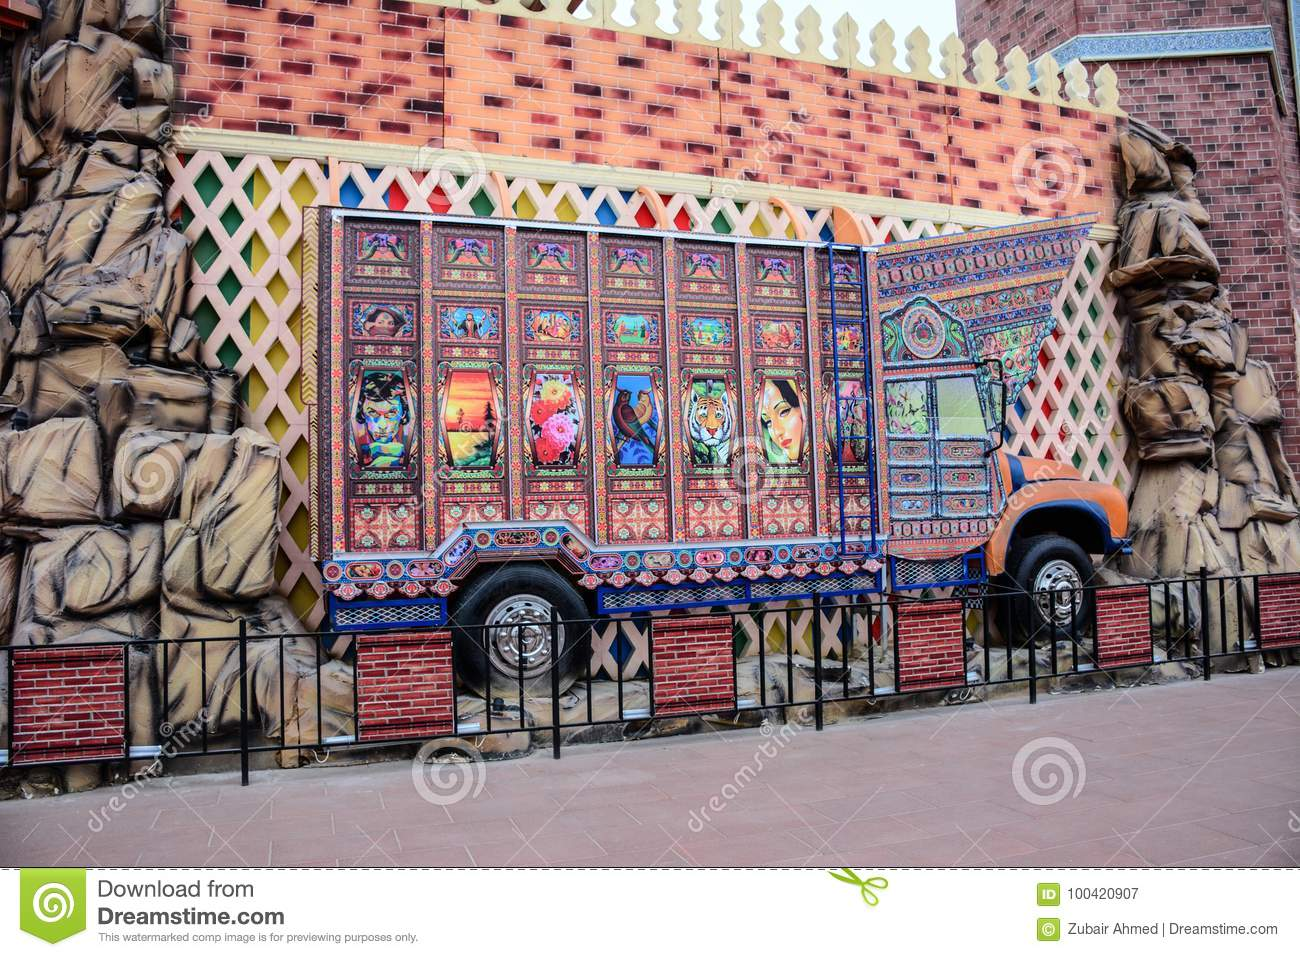 Truck art pakistan city in Global village dubai UAE